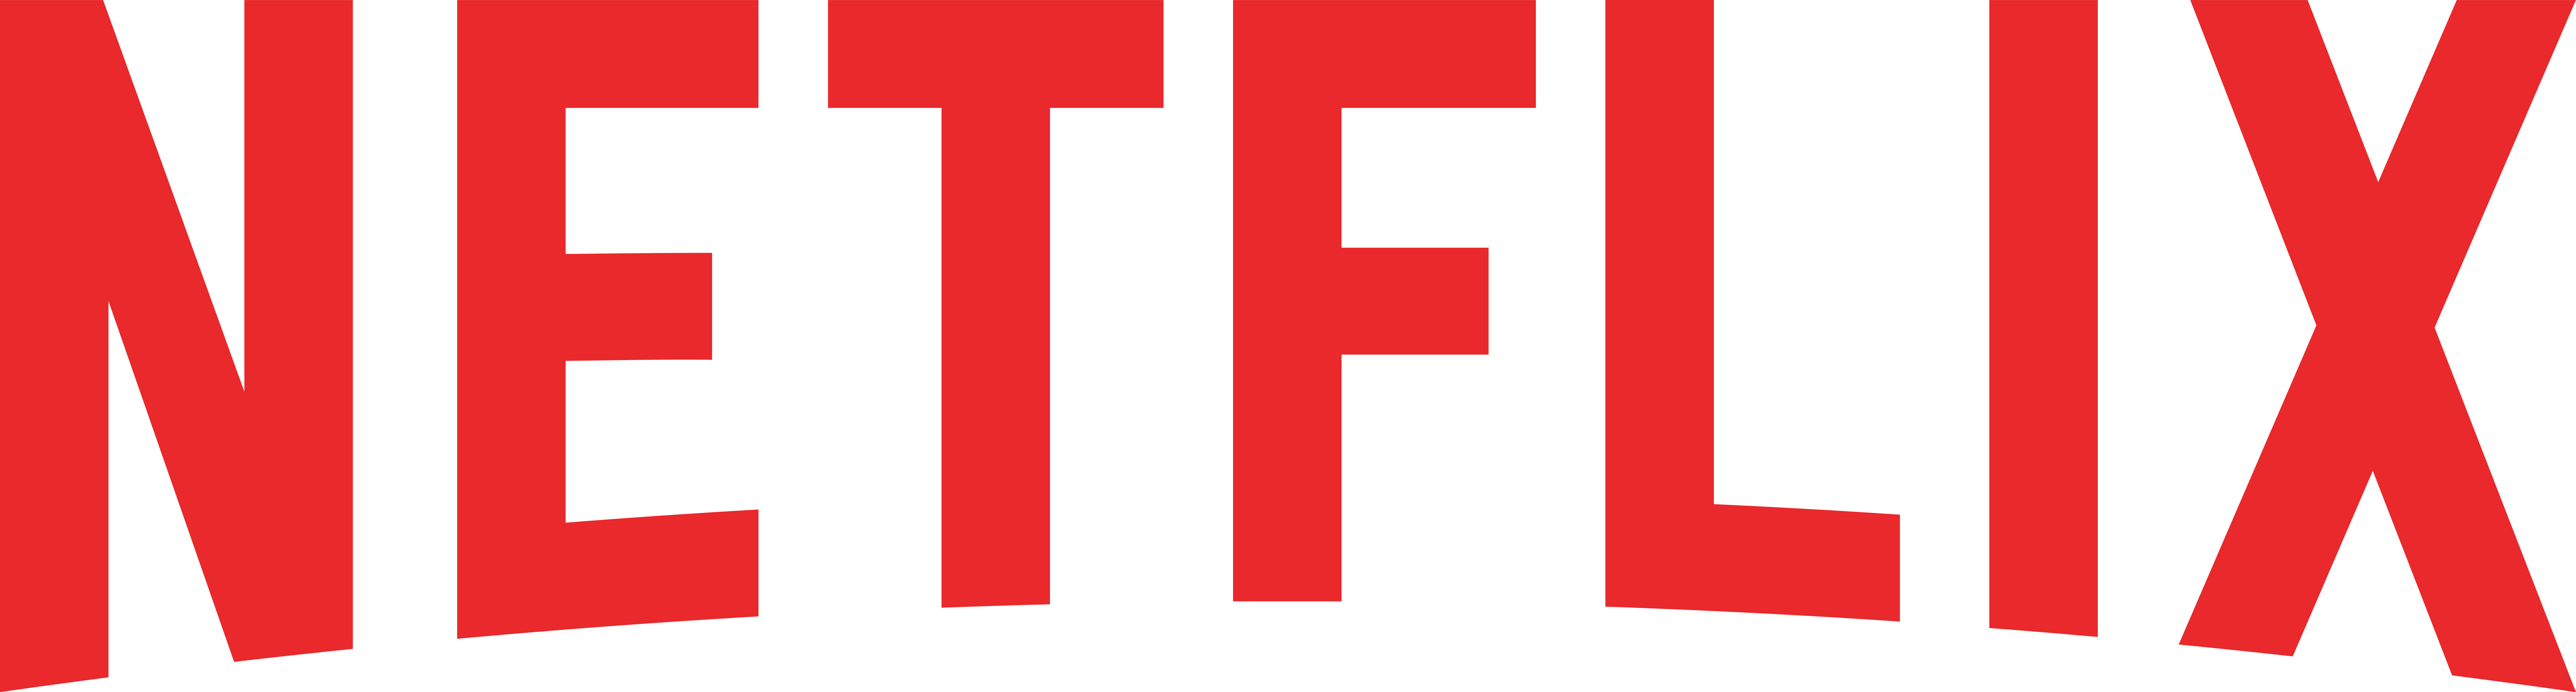 netflix logo drawing png 2576